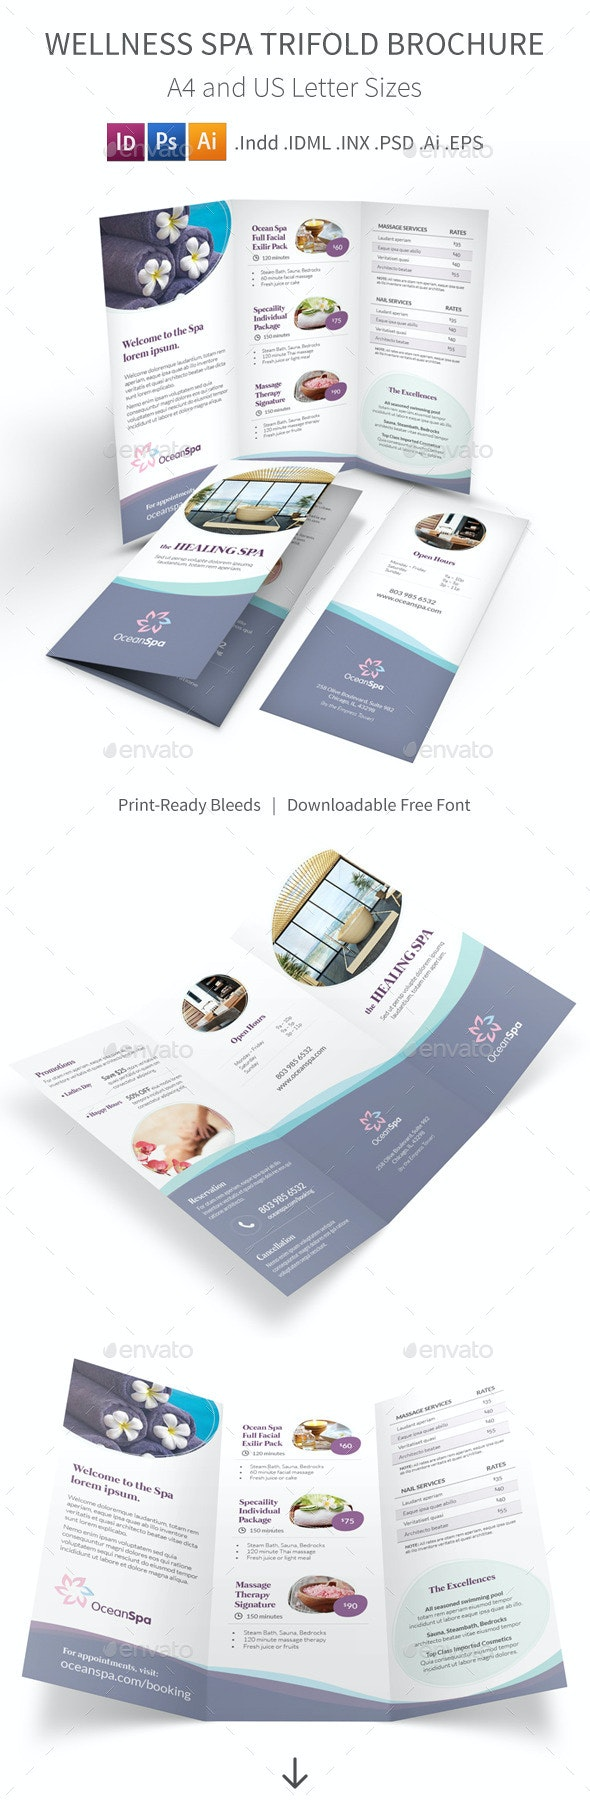 Wellness Spa Trifold Brochure - Informational Brochures